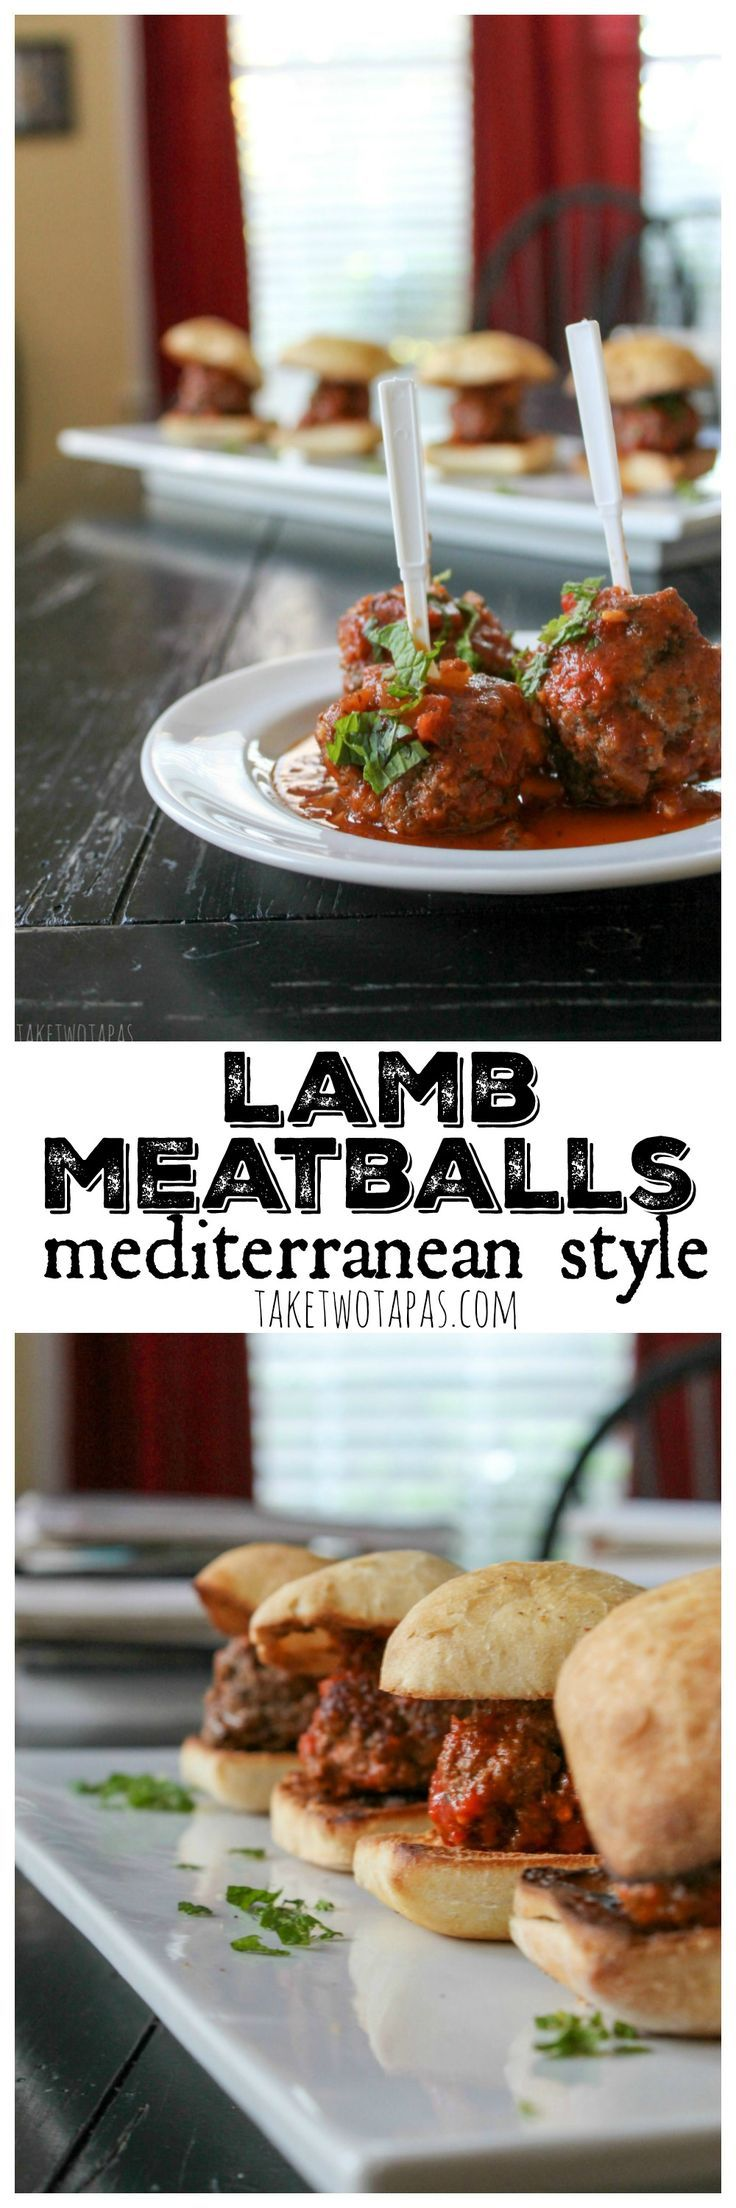 Meatballs aren't just Italian food anymore! These meatballs are made with lamb, Greek seasoning, and cilantro. Cooked in a fresh tomato sauce they are the perfect tapas dish, main course, or party appetizer. Mediterranean Lamb Meatballs Recipe | Take Two Tapas